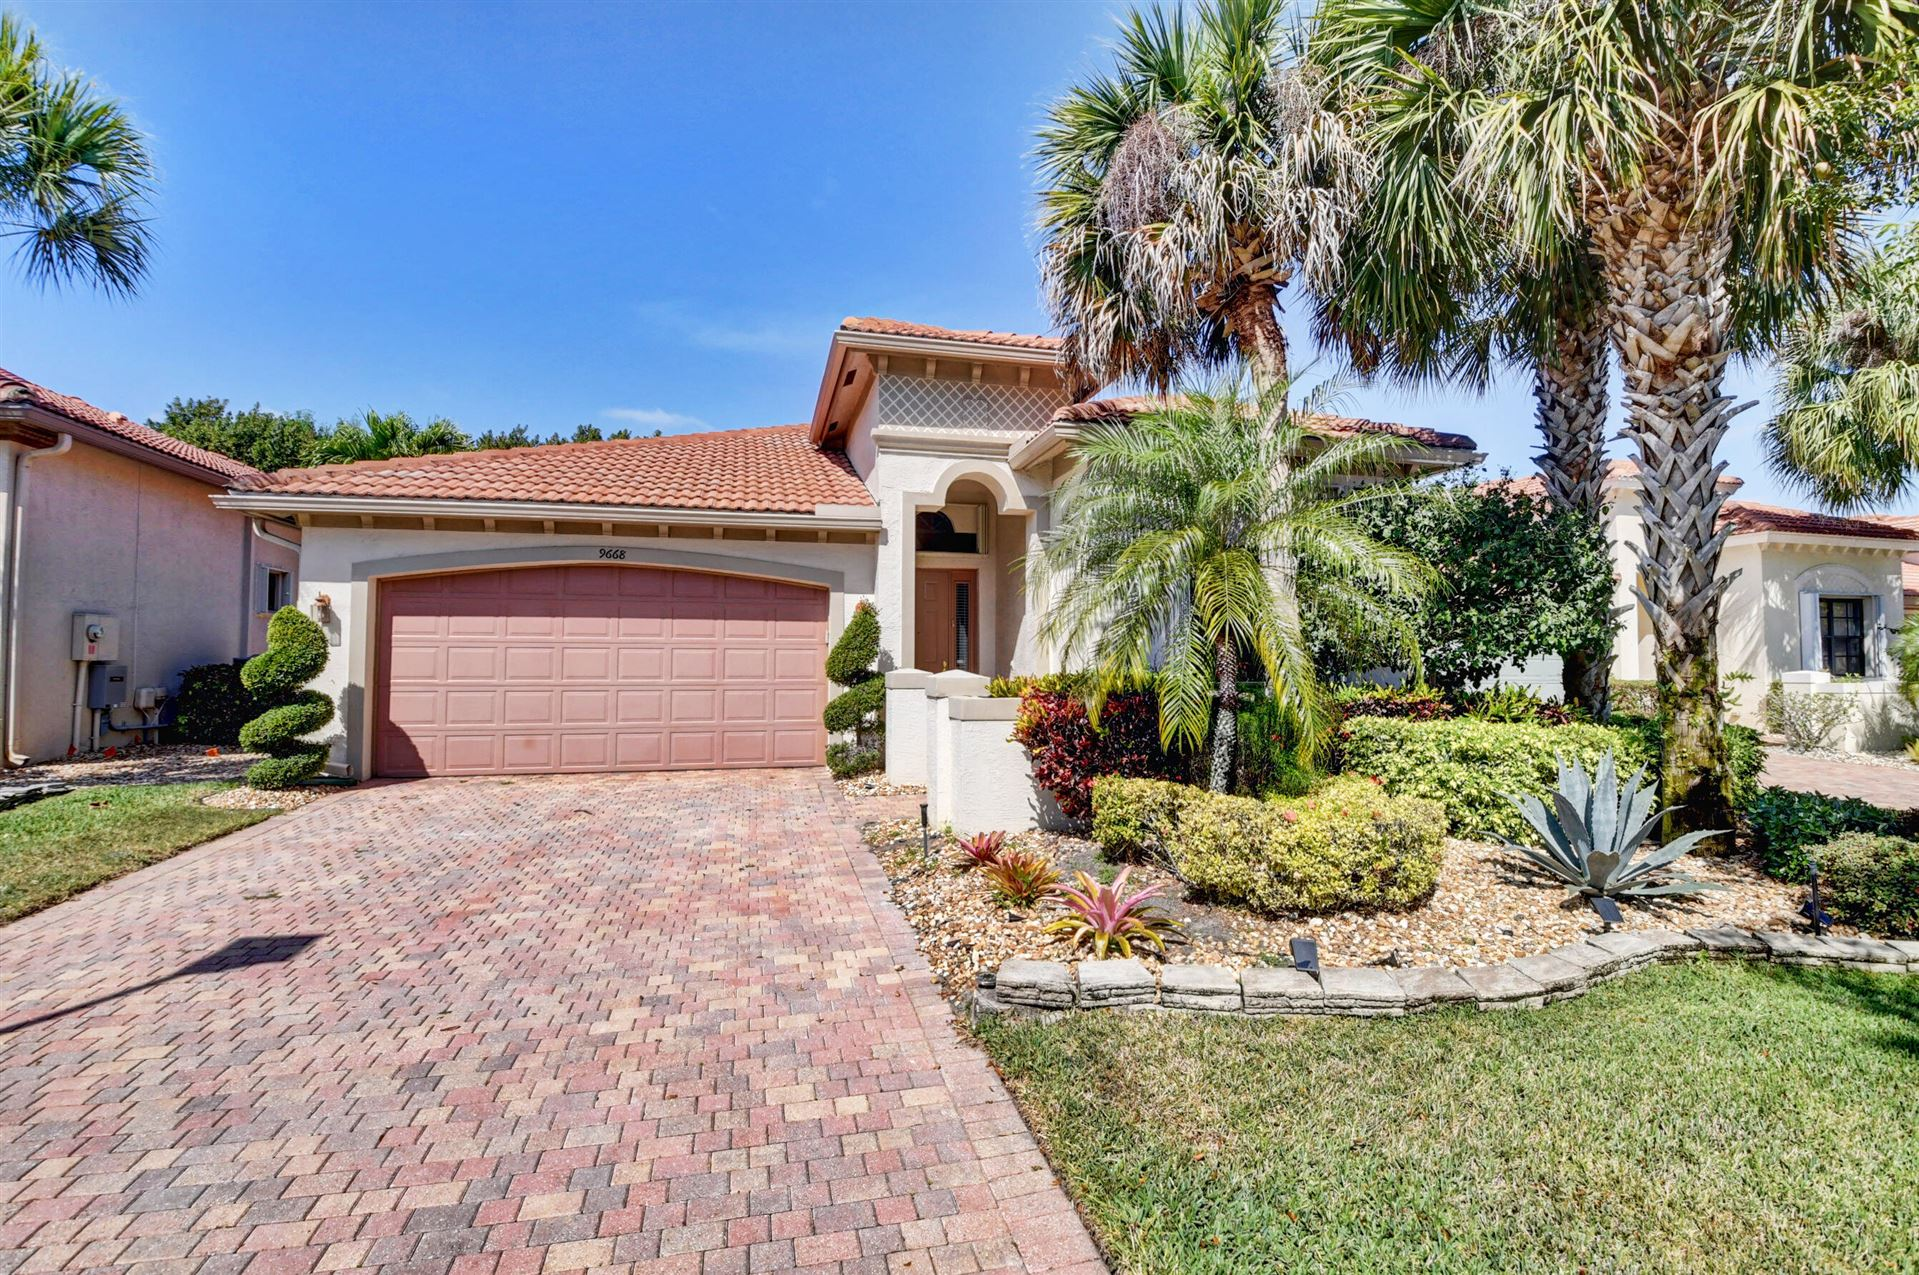 Photo of 9668 Isles Cay Drive, Delray Beach, FL 33446 (MLS # RX-10709166)